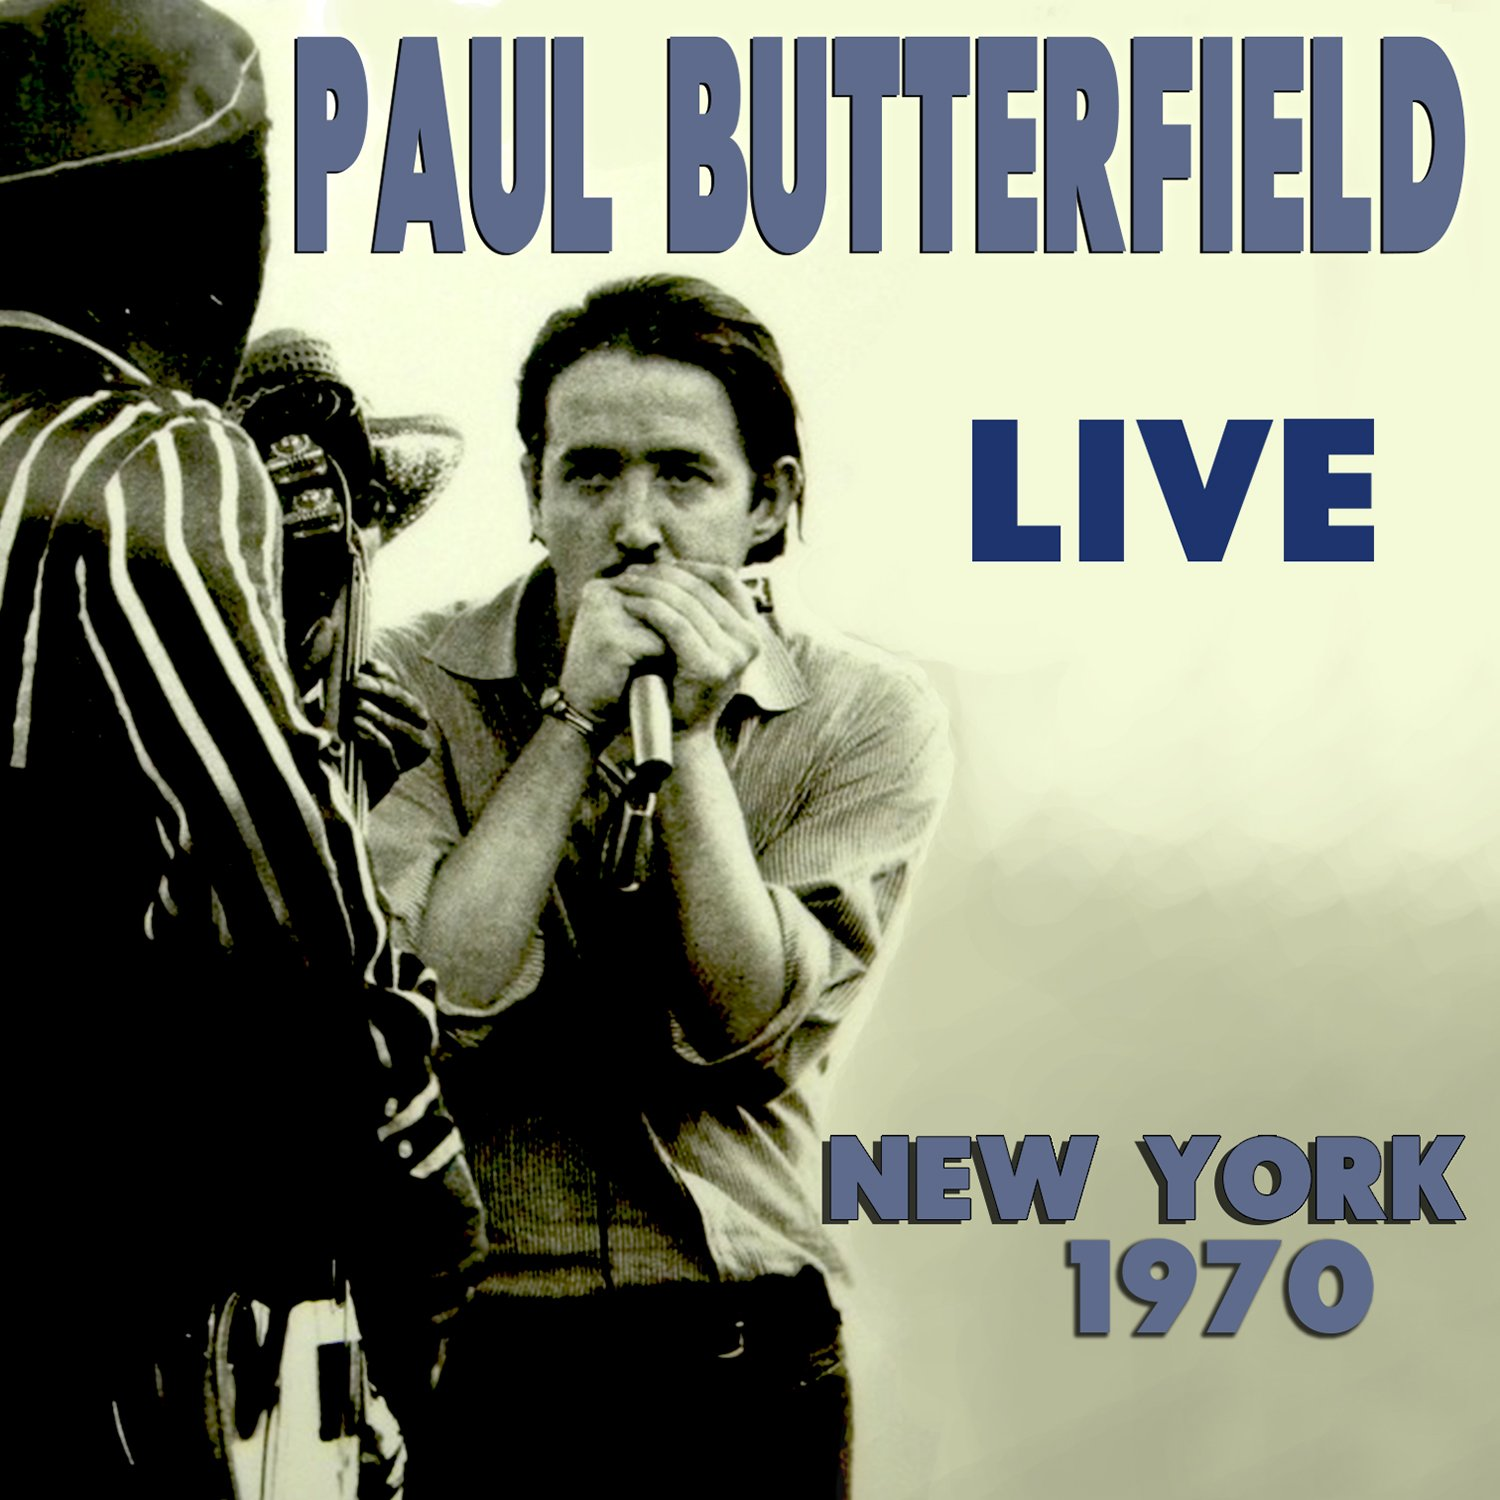 Paul Butterfield - Live New York 1970 - 2CD - FLAC - 2016 - NBFLAC Download